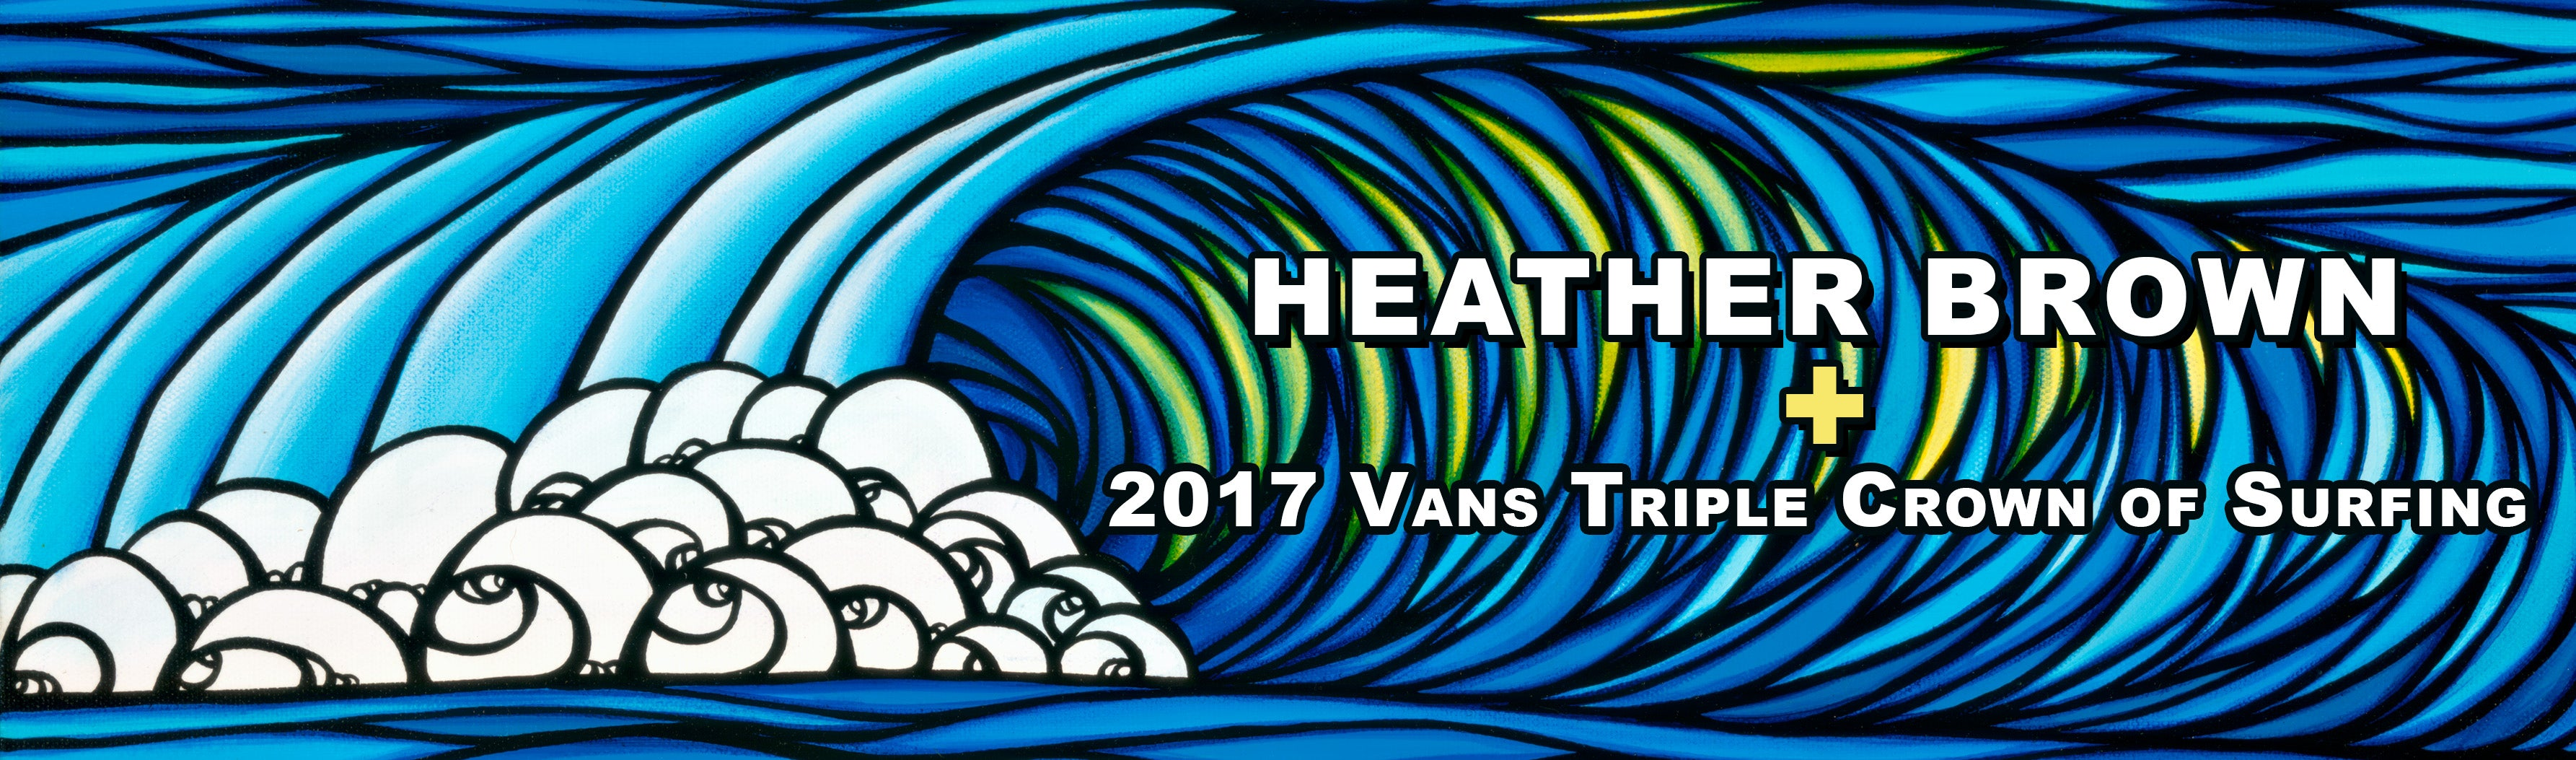 Heather Brown created the main visual art for the 2017 Vans Triple Crown of Surfing!